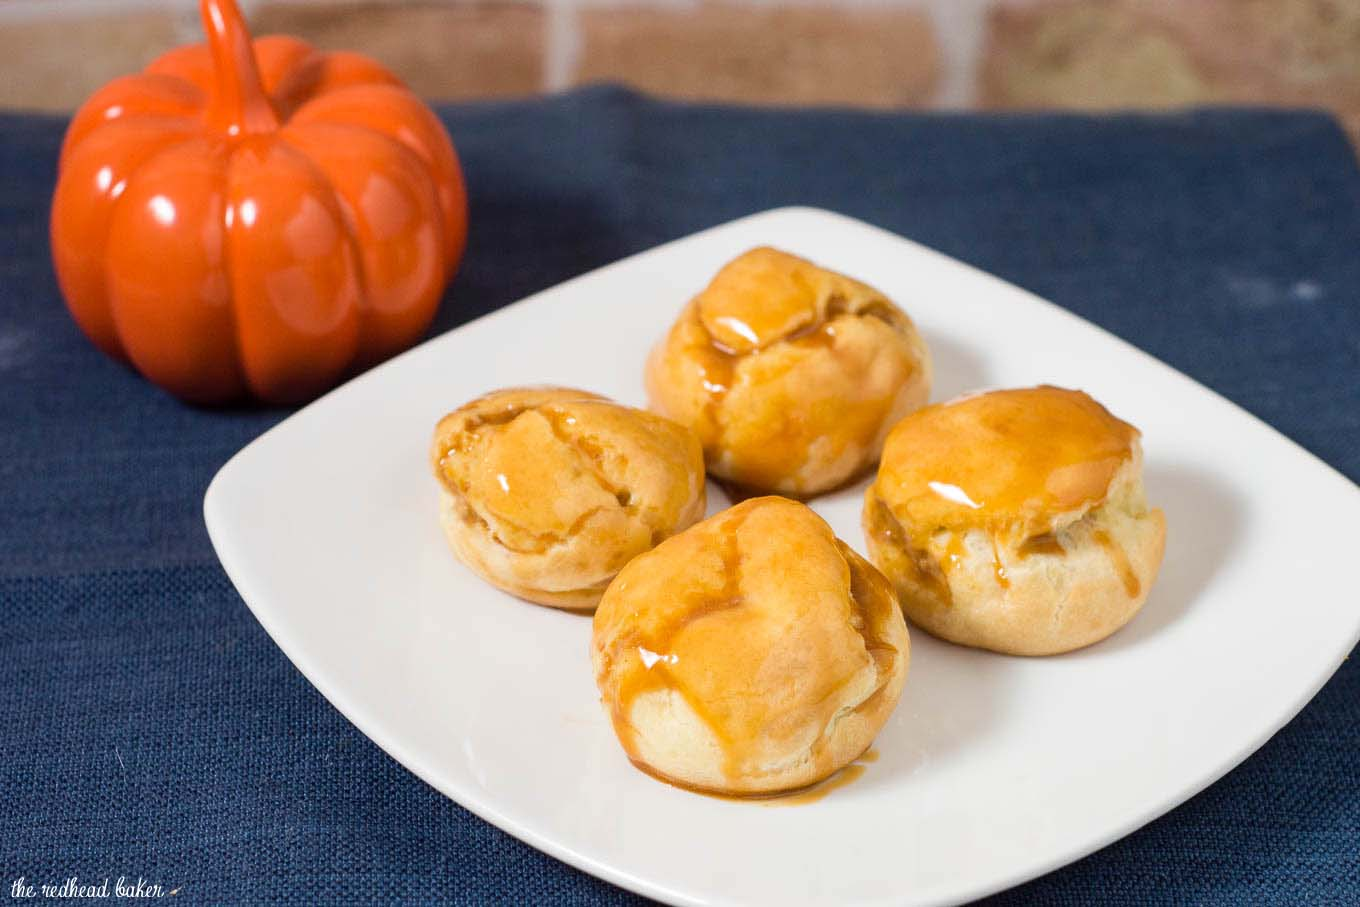 Pumpkin cream puffs are filled with creamy pumpkin custard and dunked in caramel glaze. You've never had a pumpkin dessert like this before! #PumpkinWeek